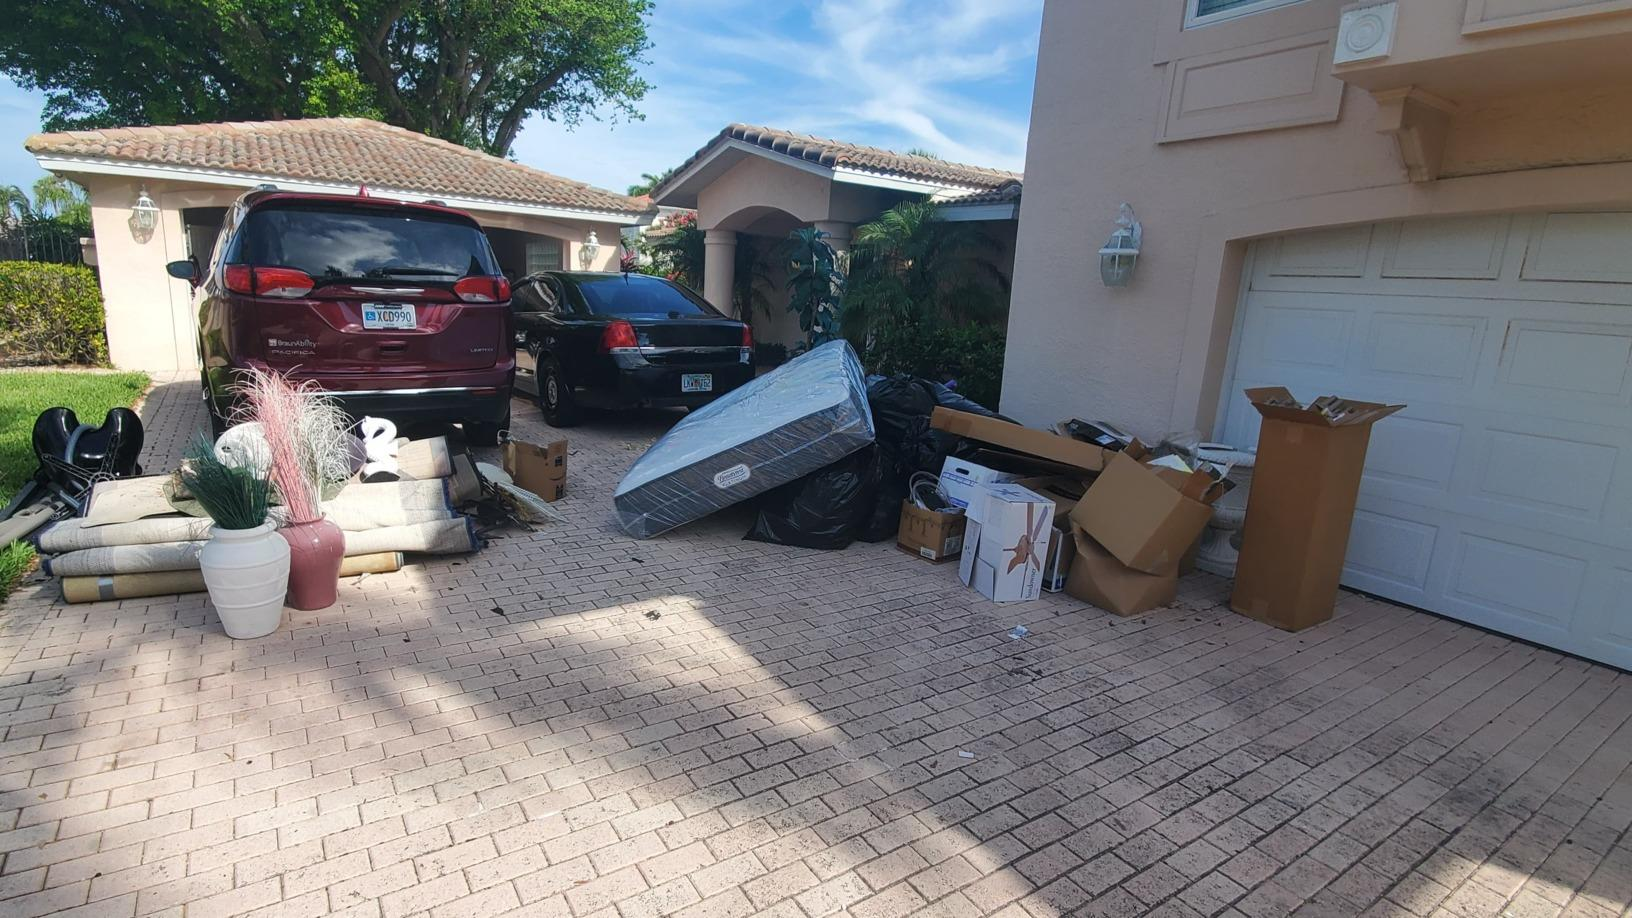 Decluttering home after contractor work in Longboat Key, FL - Before Photo